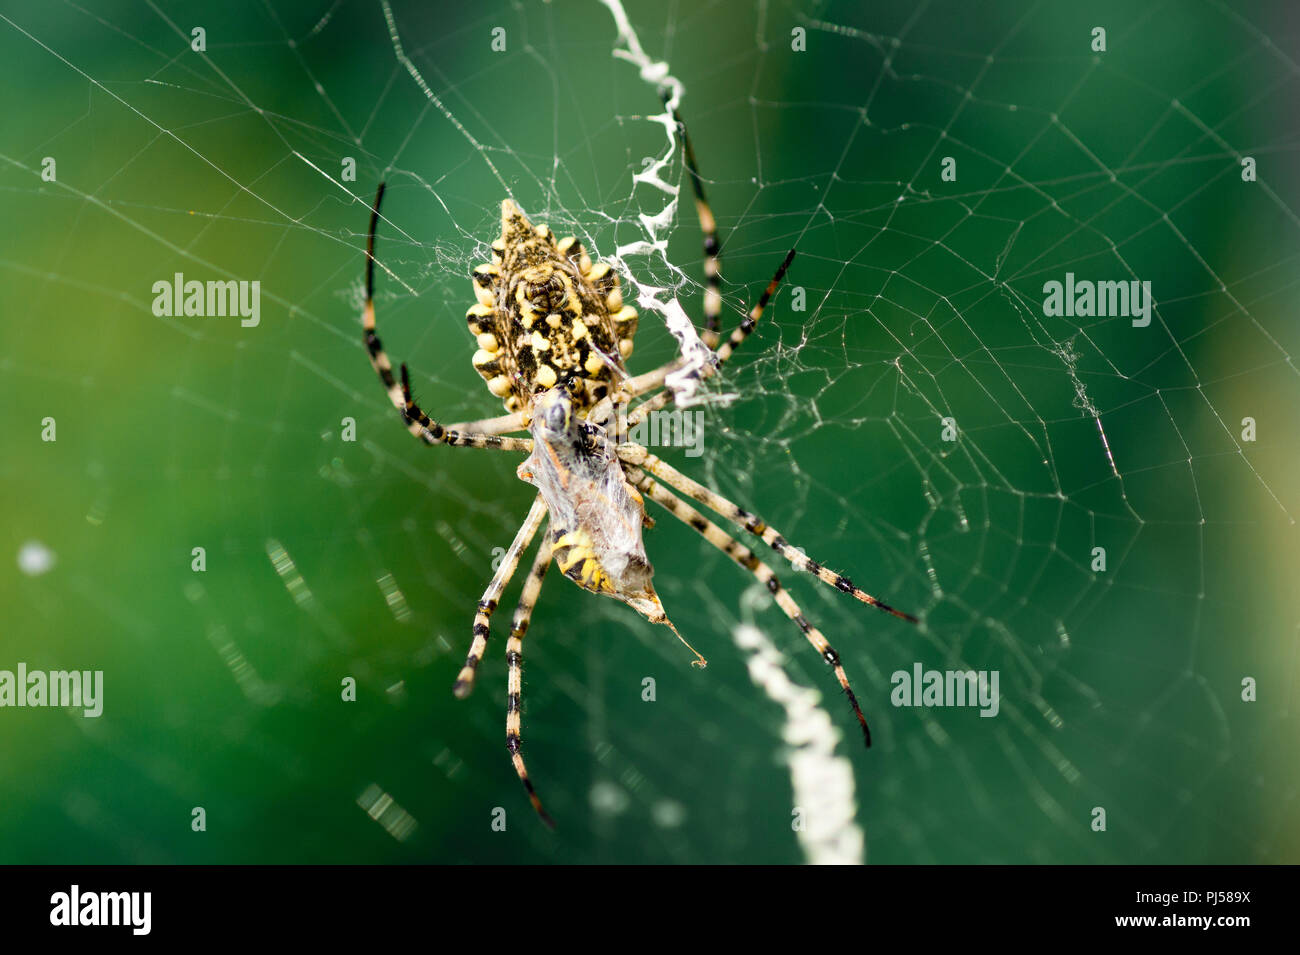 A Terrible Poisonous Spider Argiope Lobata A Female Sitting Next